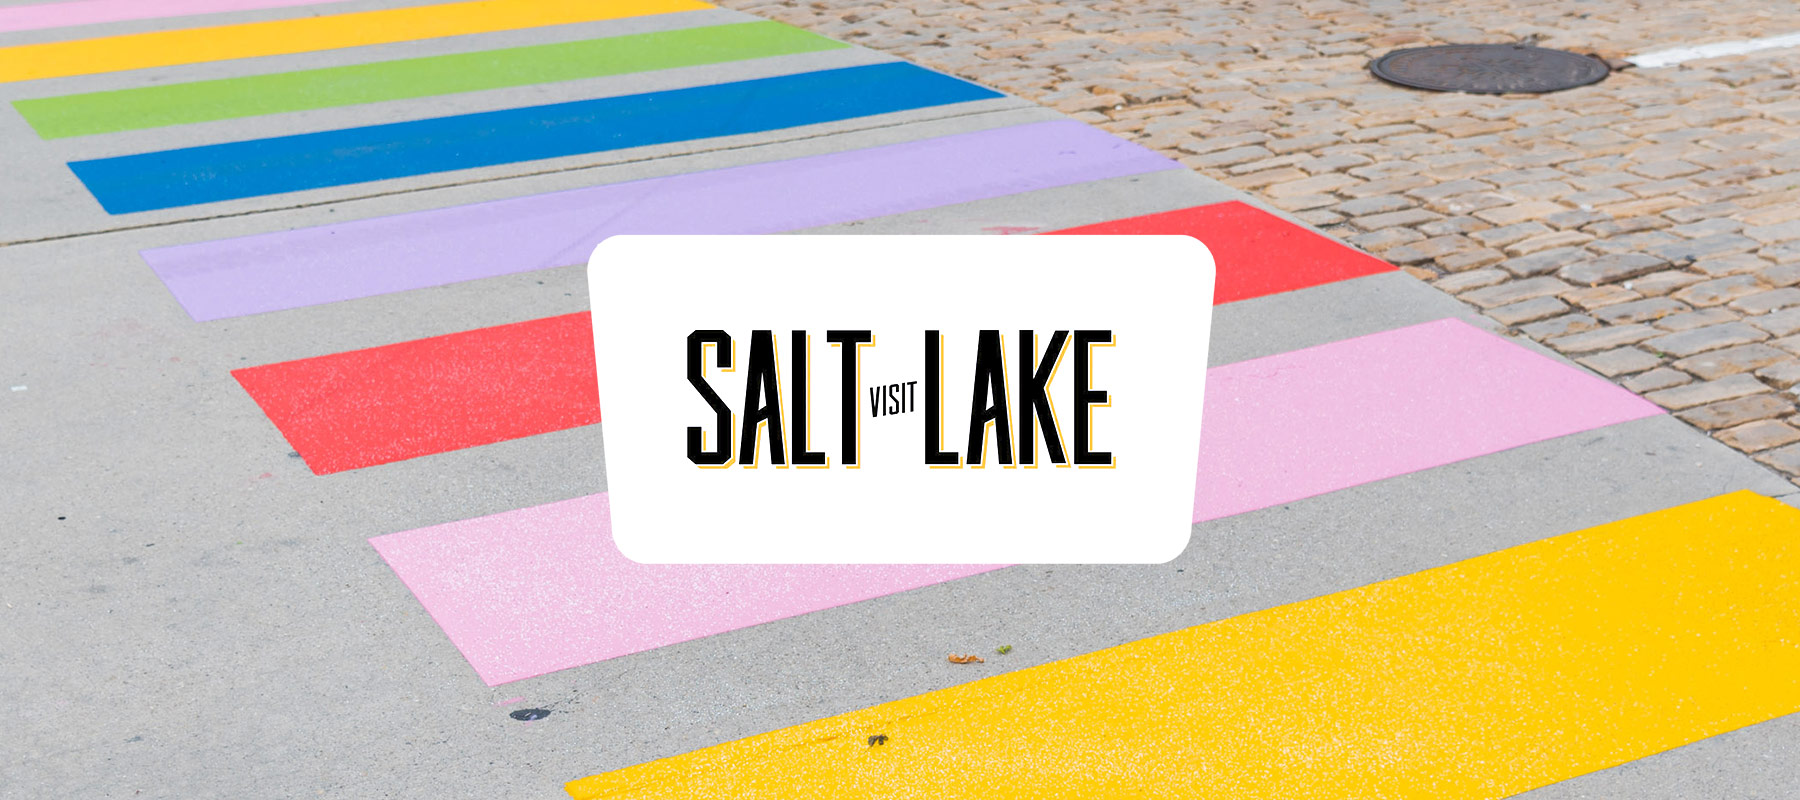 Visit Salt Lake - LGBTQ strategy activation